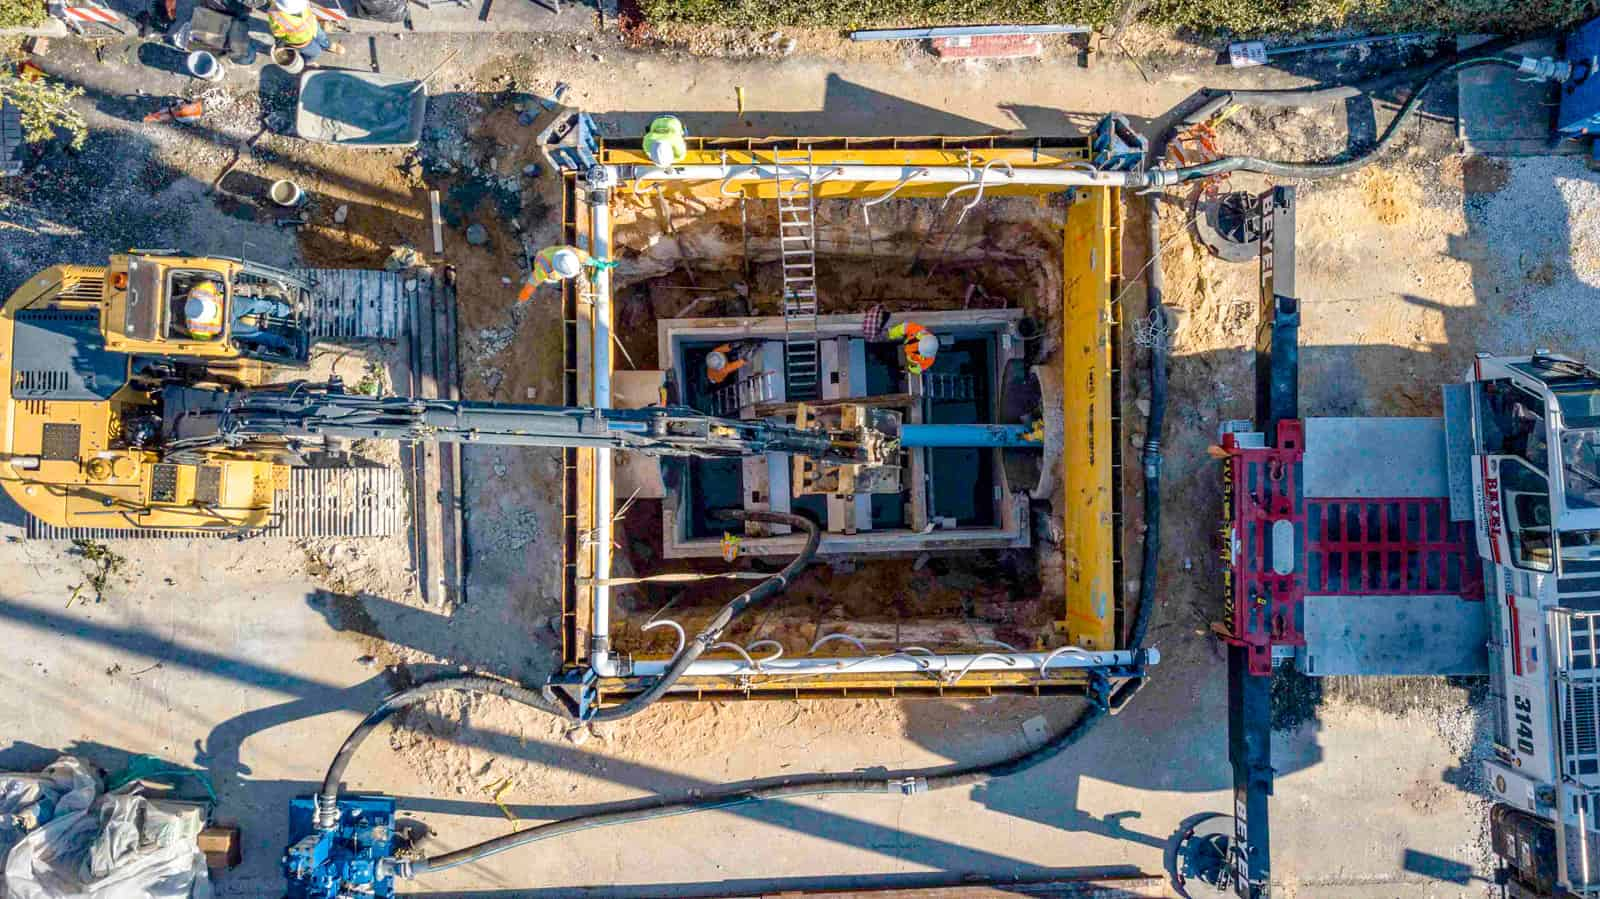 aerial view looking down at construction site where 6 workers in yellow vests are installing a new water pipe in Florida